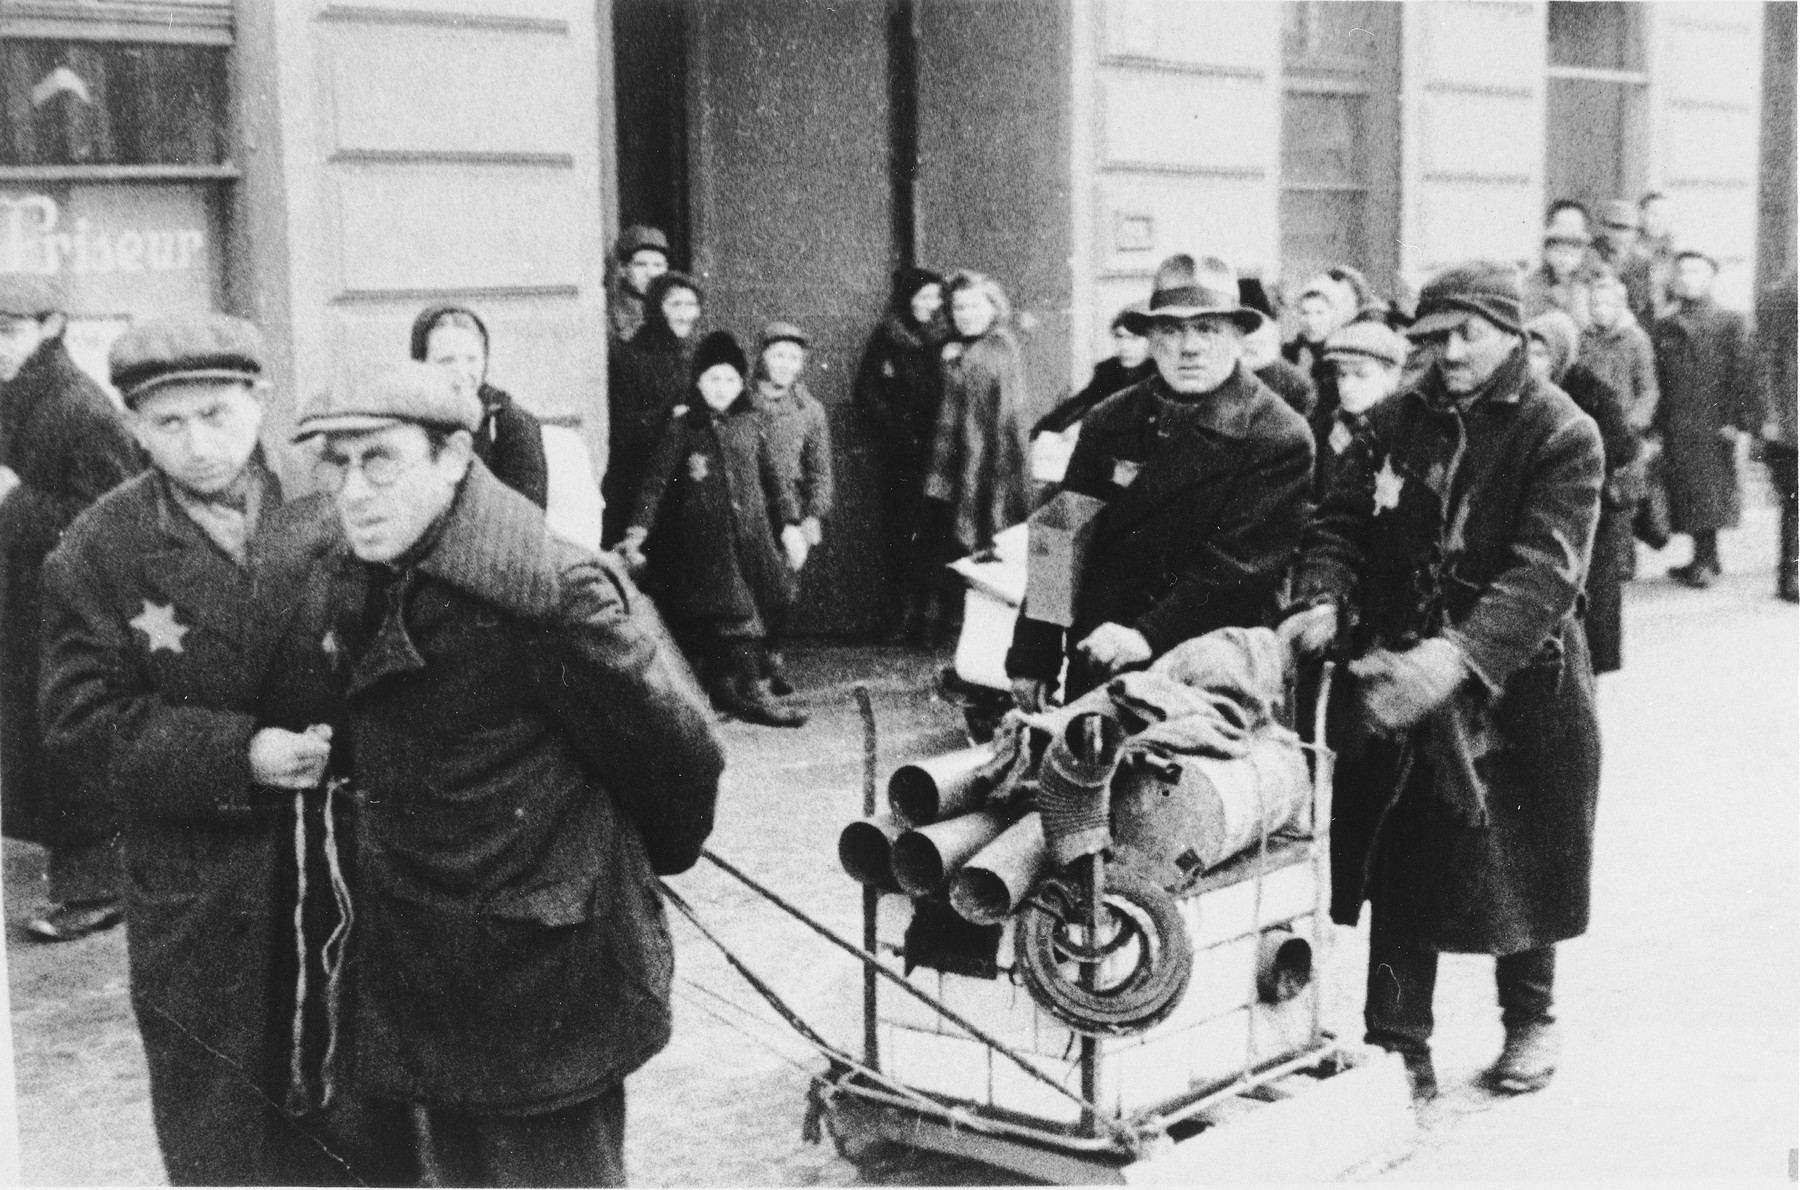 A group of Jewish men haul material through what probably is the Lodz ghetto.